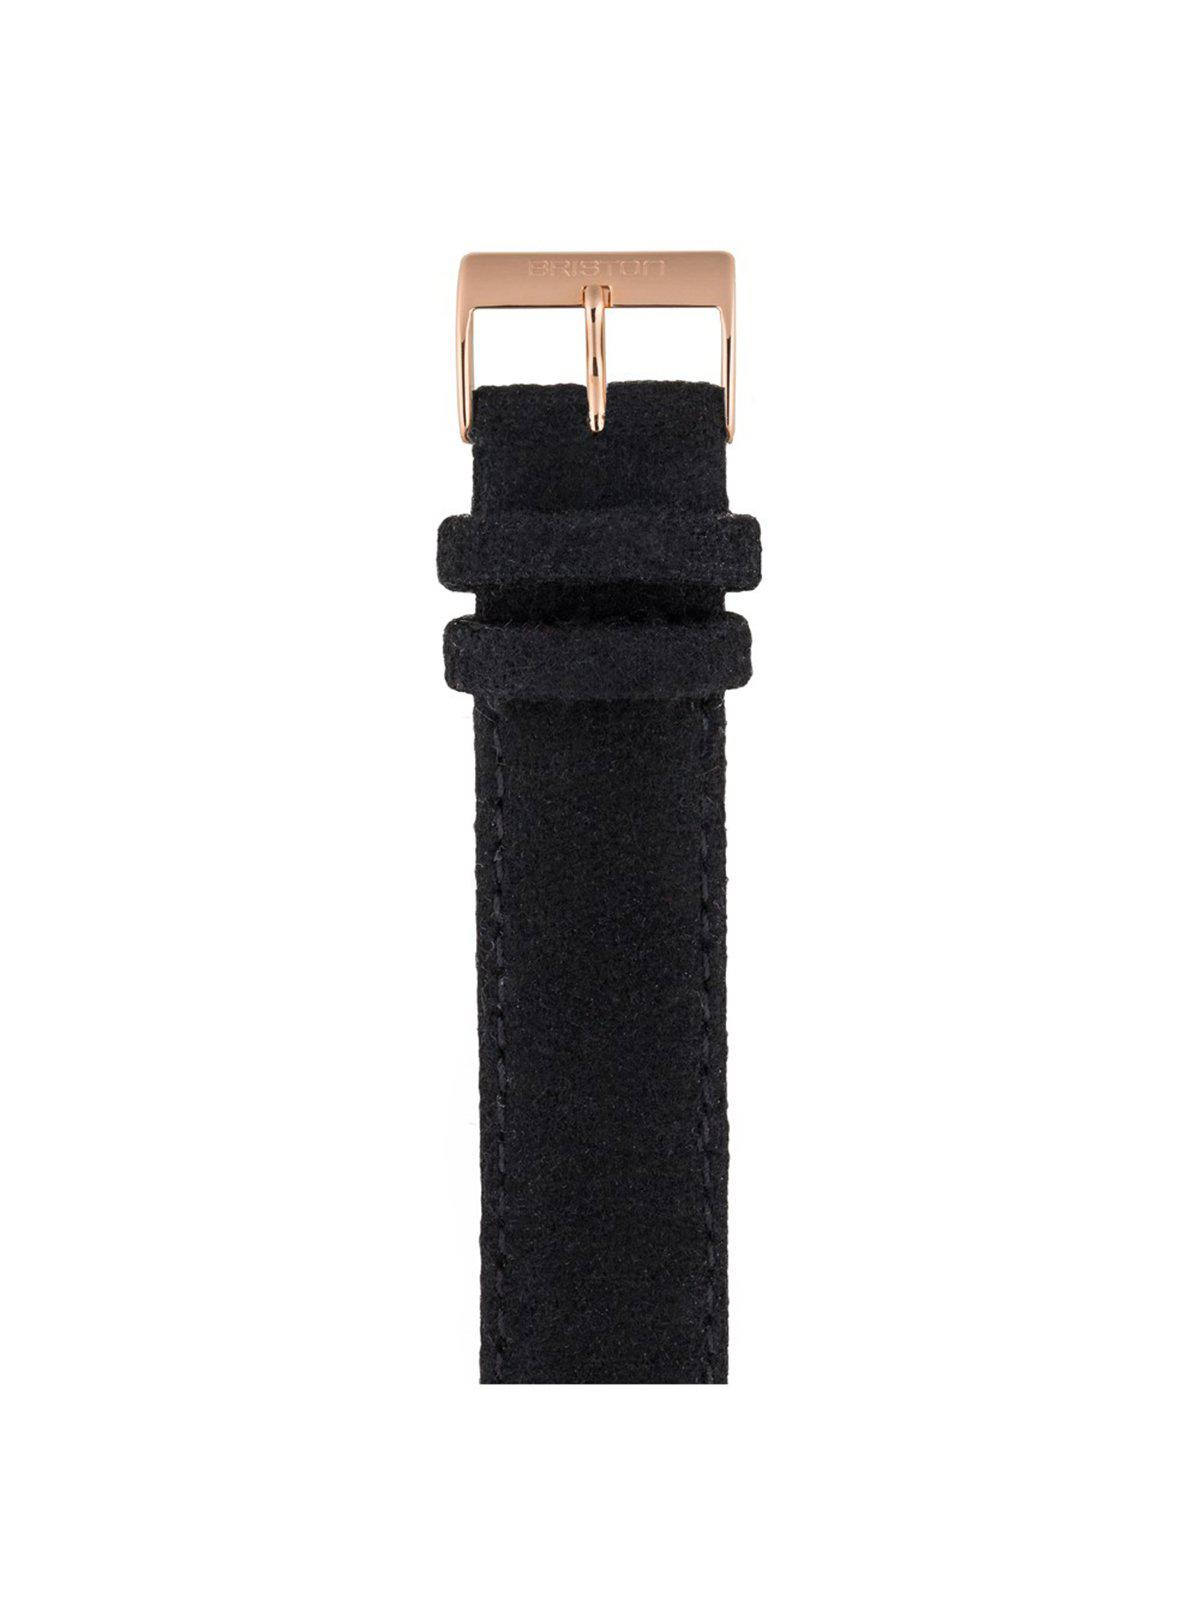 Briston Leather Flannel Strap Black Rose Gold 20mm - MORE by Morello Indonesia